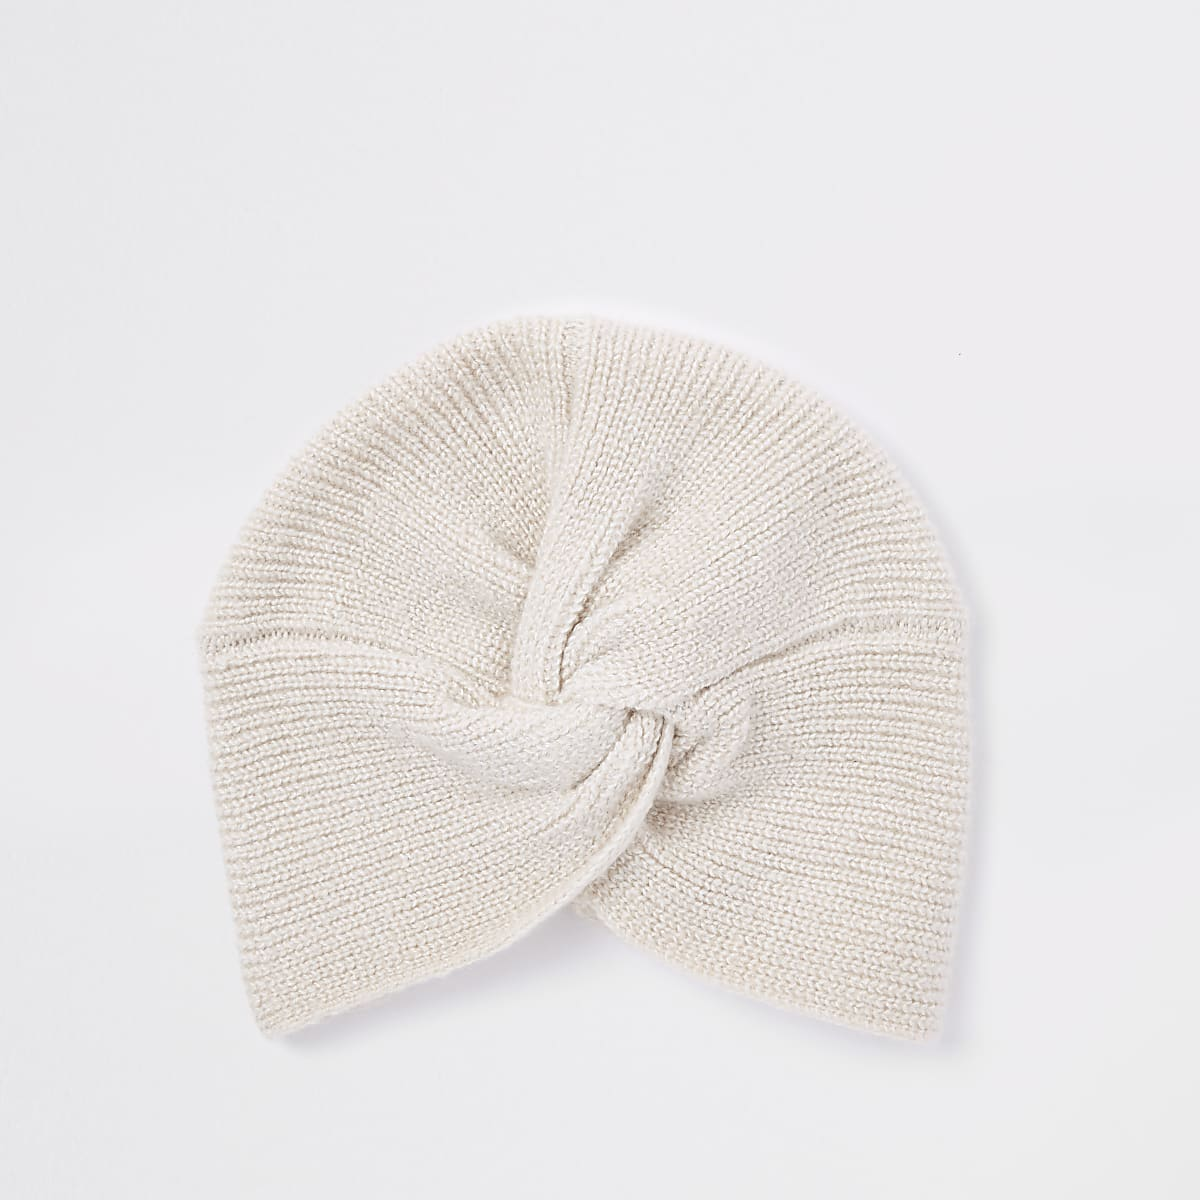 Beige knit twist turban headband